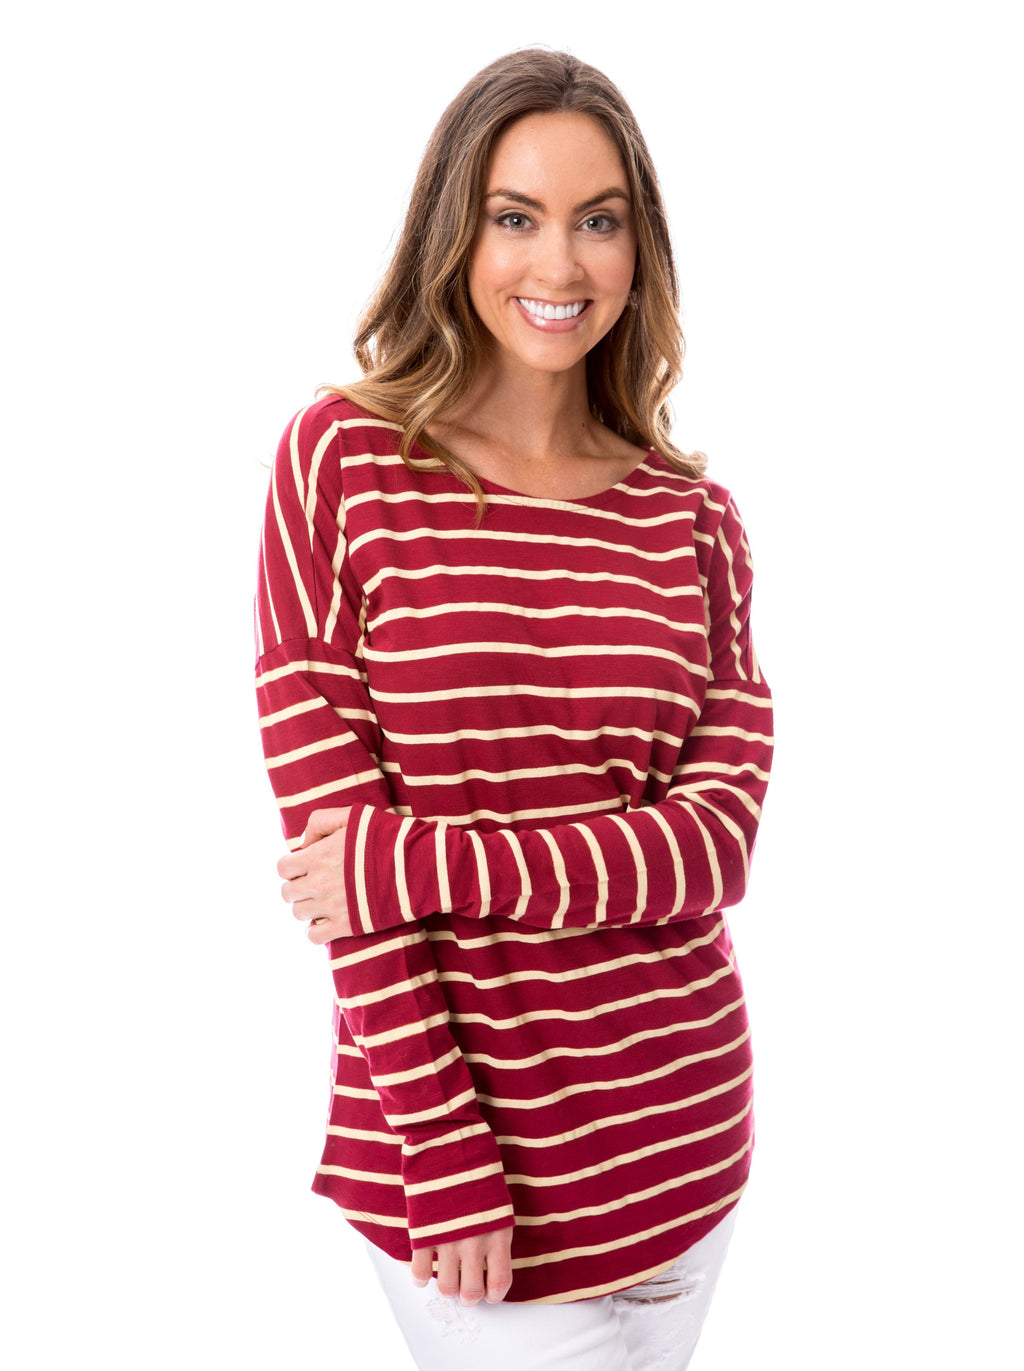 Garnet + Gold | Long Sleeve Tee